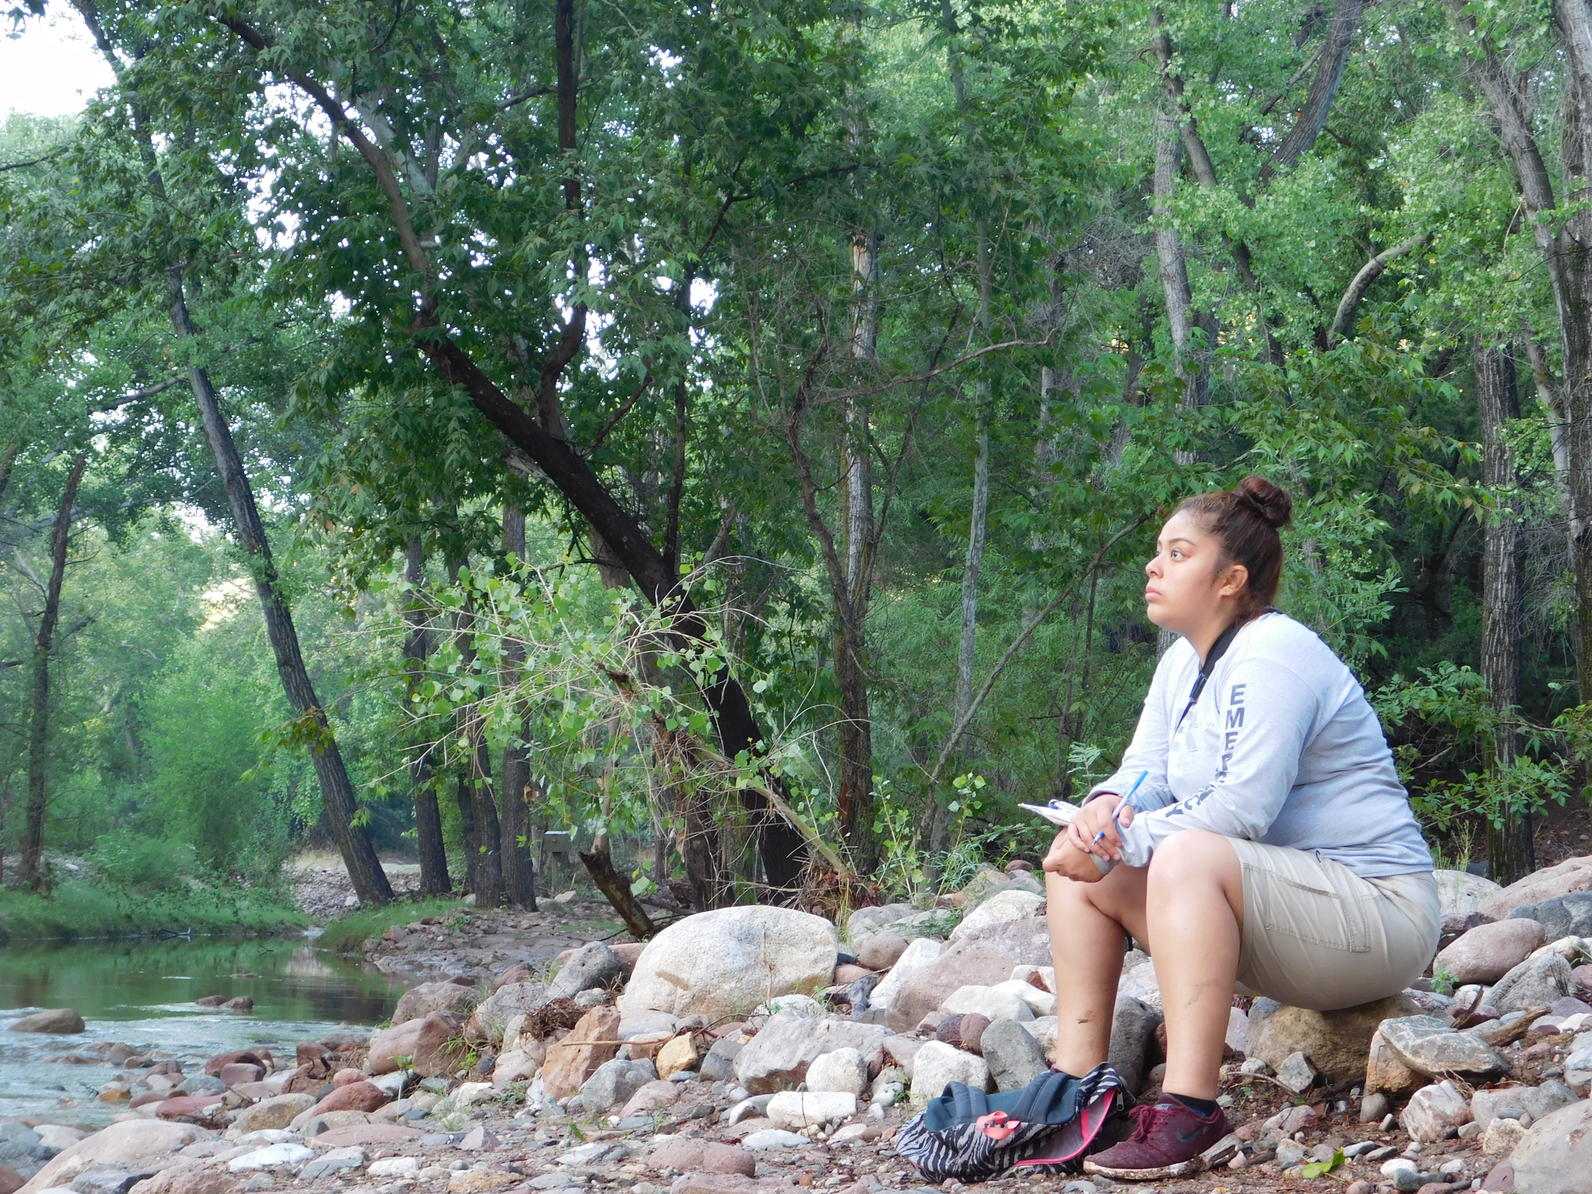 Aritzel Baez, one of last year's summer interns, looks at foliage along the riverbank.